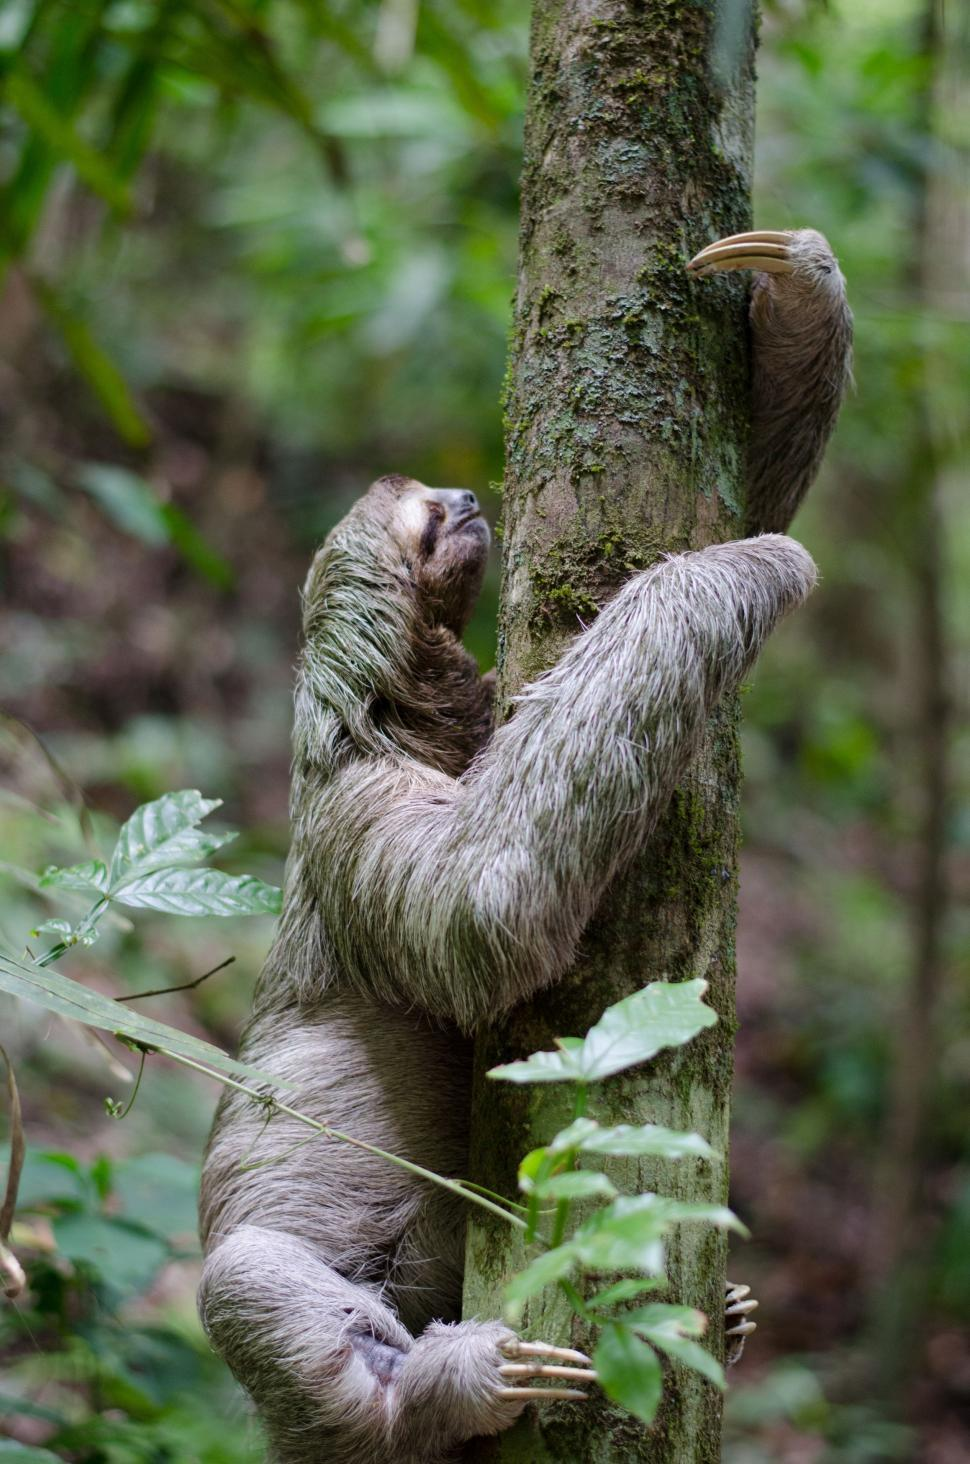 Download Free Stock Photo of three-toed sloth sloth mammal